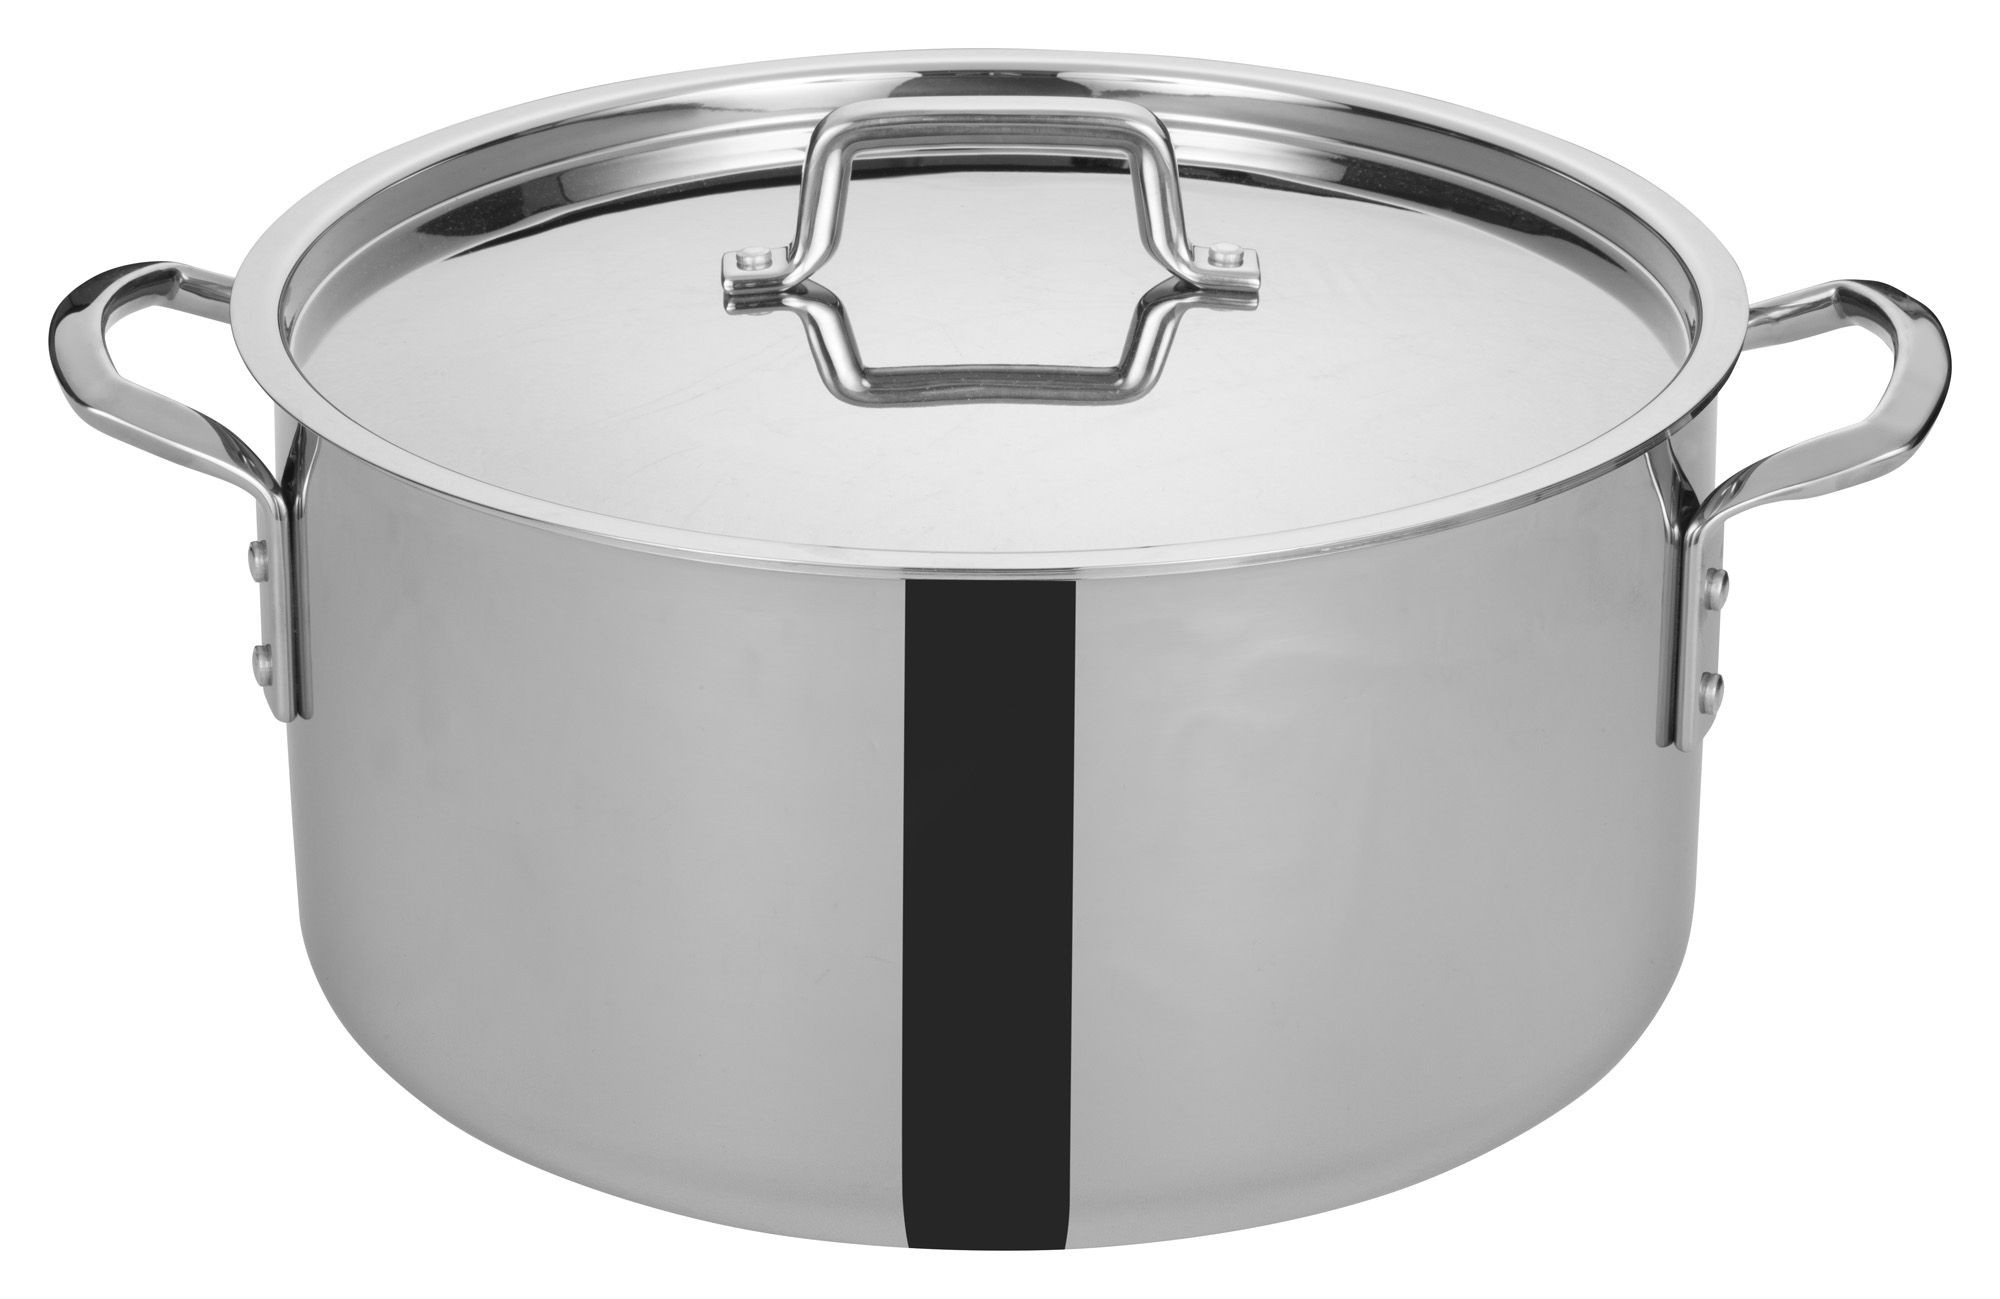 Winco TGSP-20 Tri-Ply Stainless Steel 20 Qt. Stock Pot with Cover